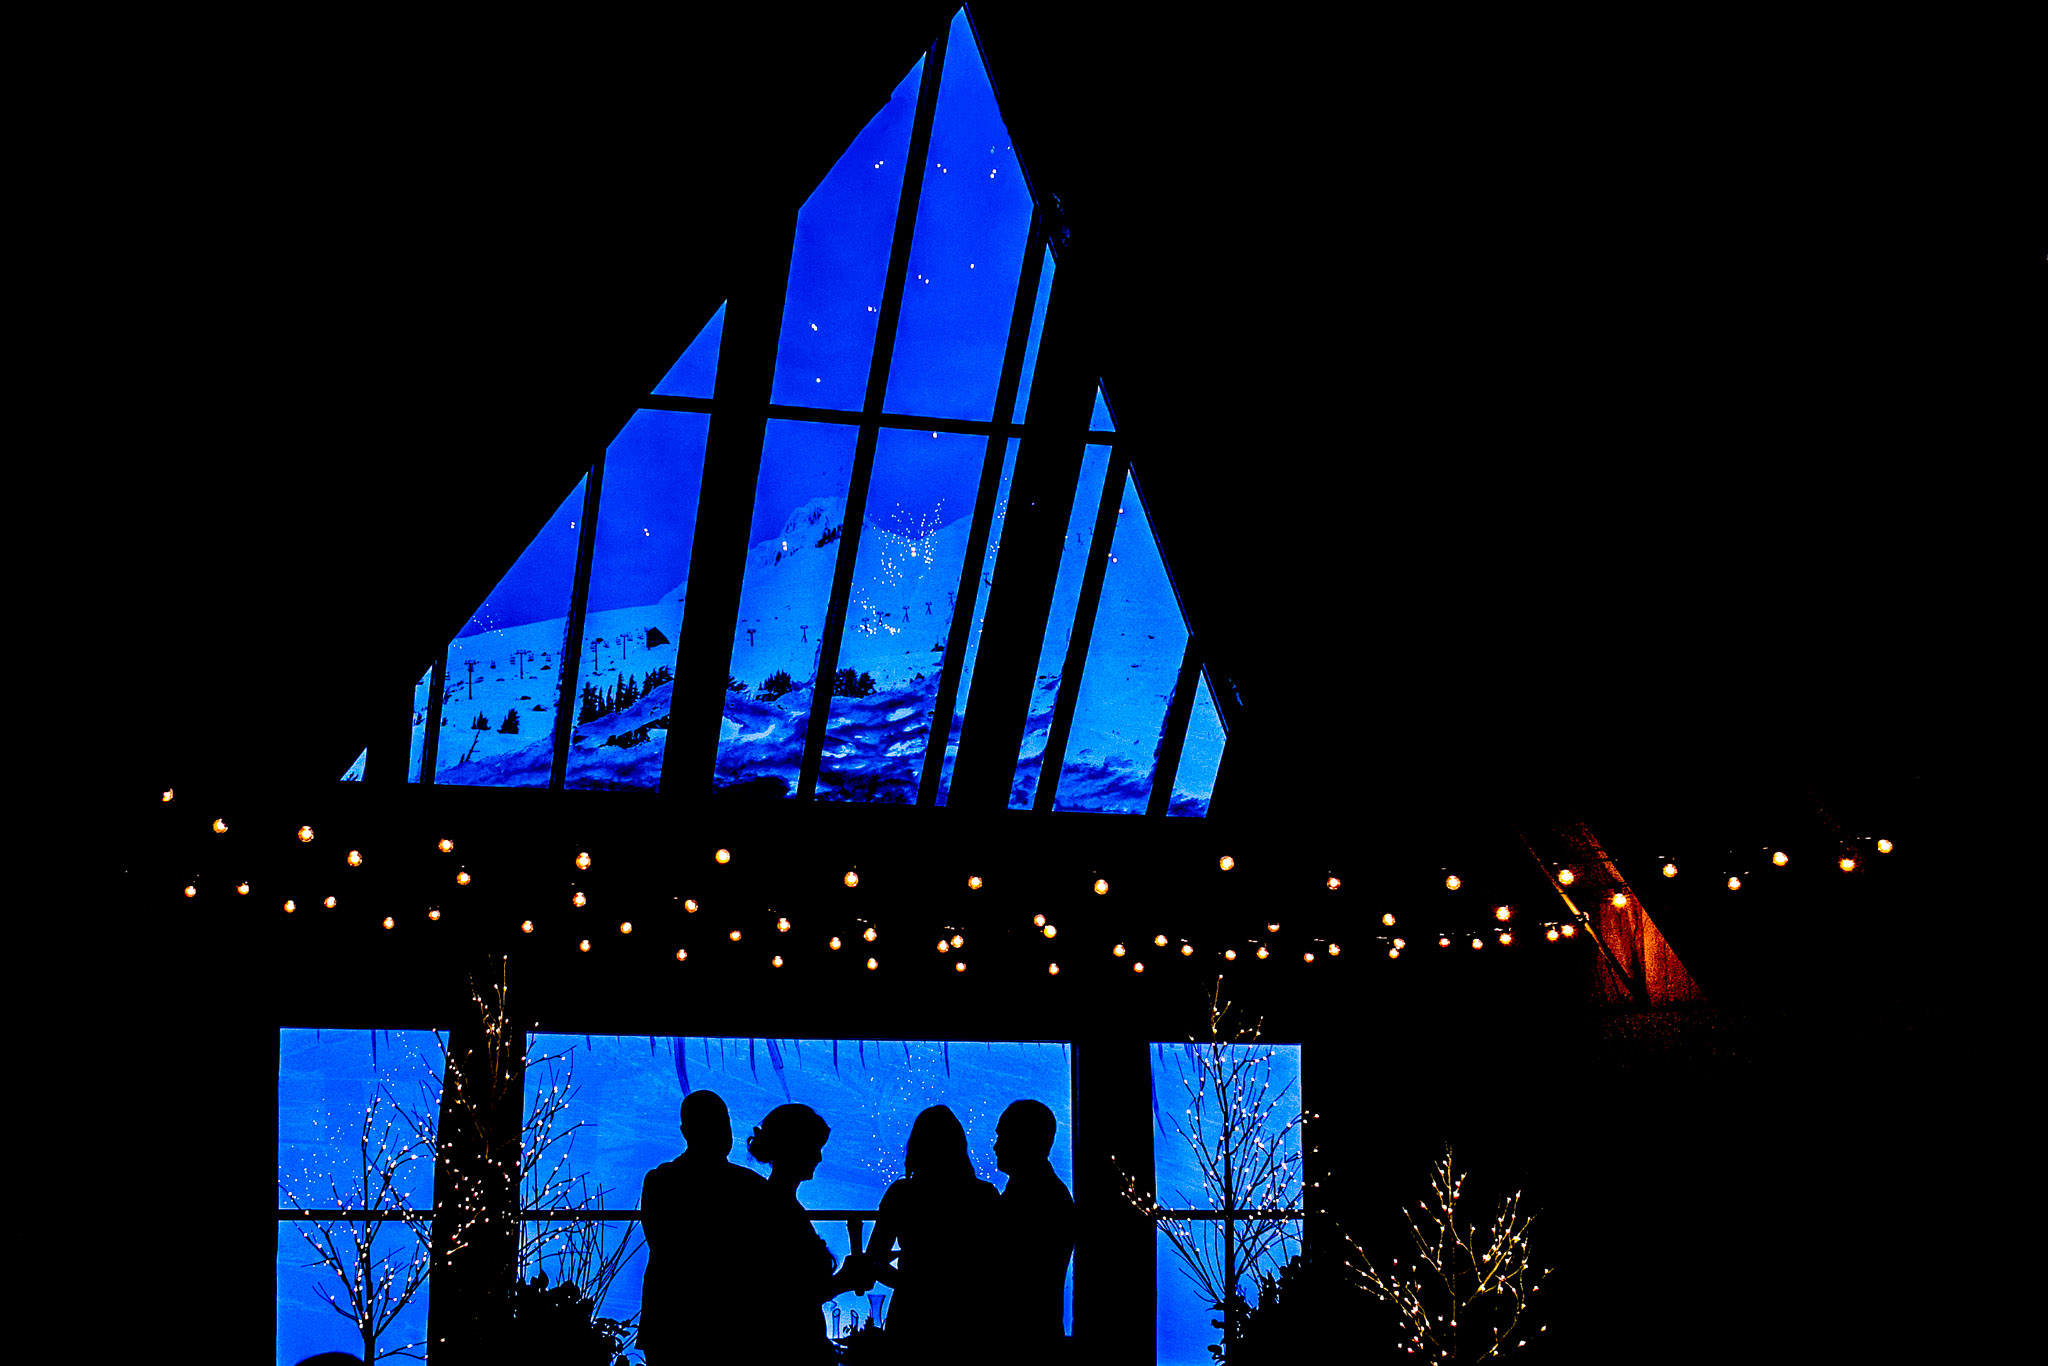 Wedding ceremony at Timberline Lodge in Eagles Nest - Silhouette shot of bride and groom in ceremony